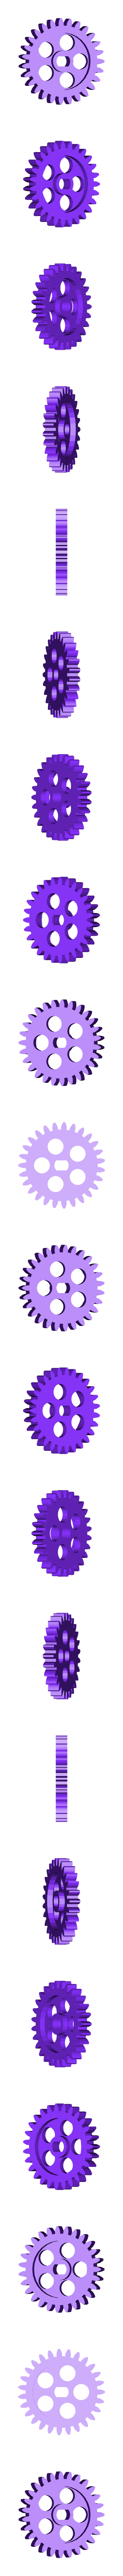 Involute_Gear_375_27T.stl Download free STL file Pointlessly complex gear device • 3D print design, harfigger